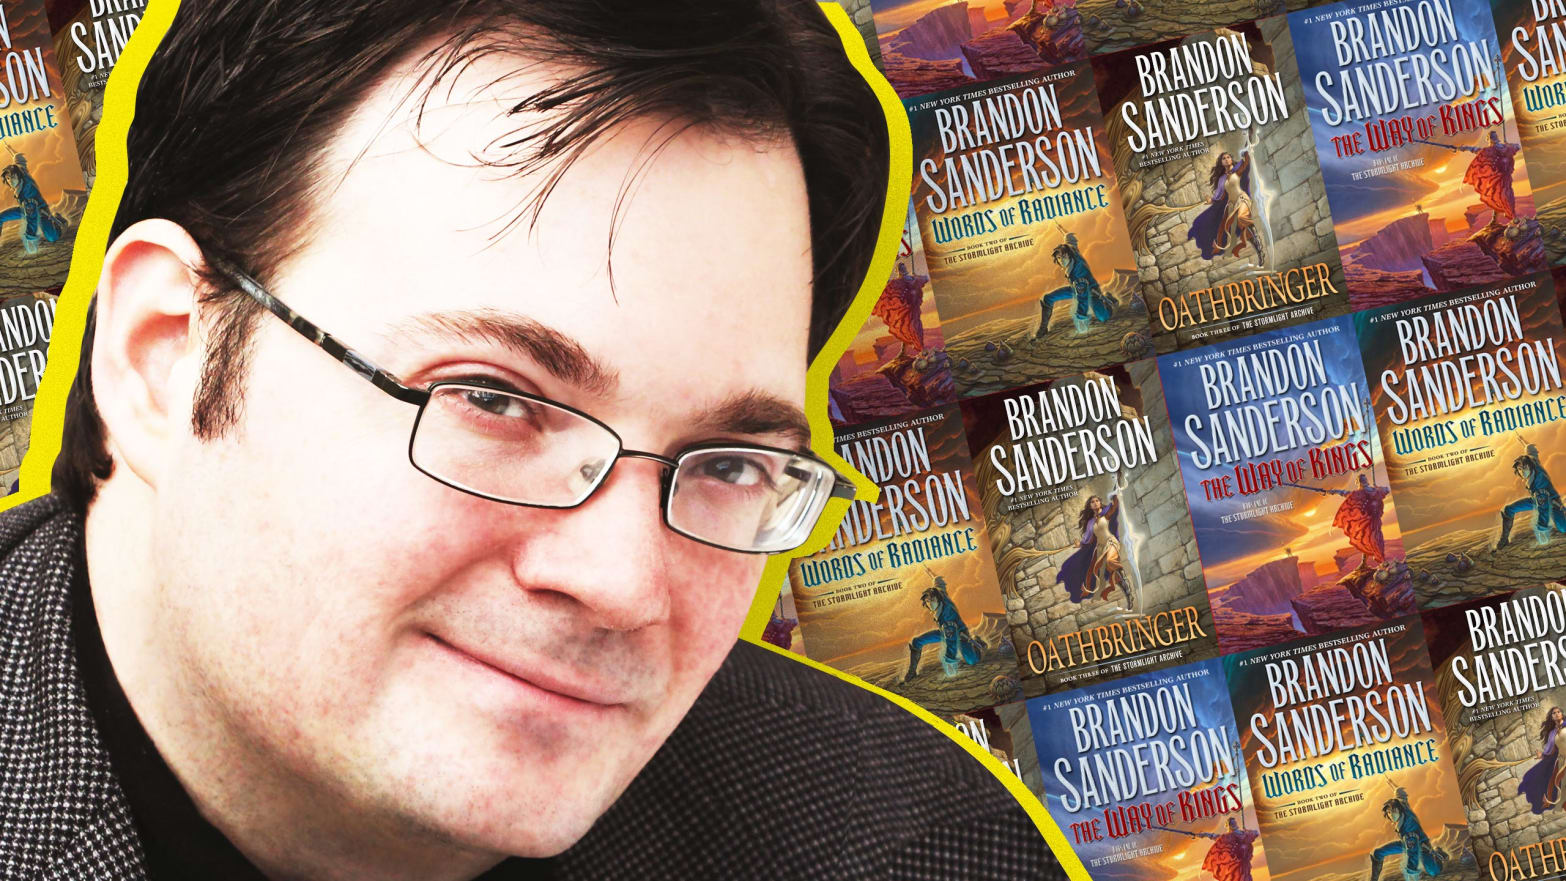 In 'Game of Thrones' Withdrawal? Brandon Sanderson Can Help.